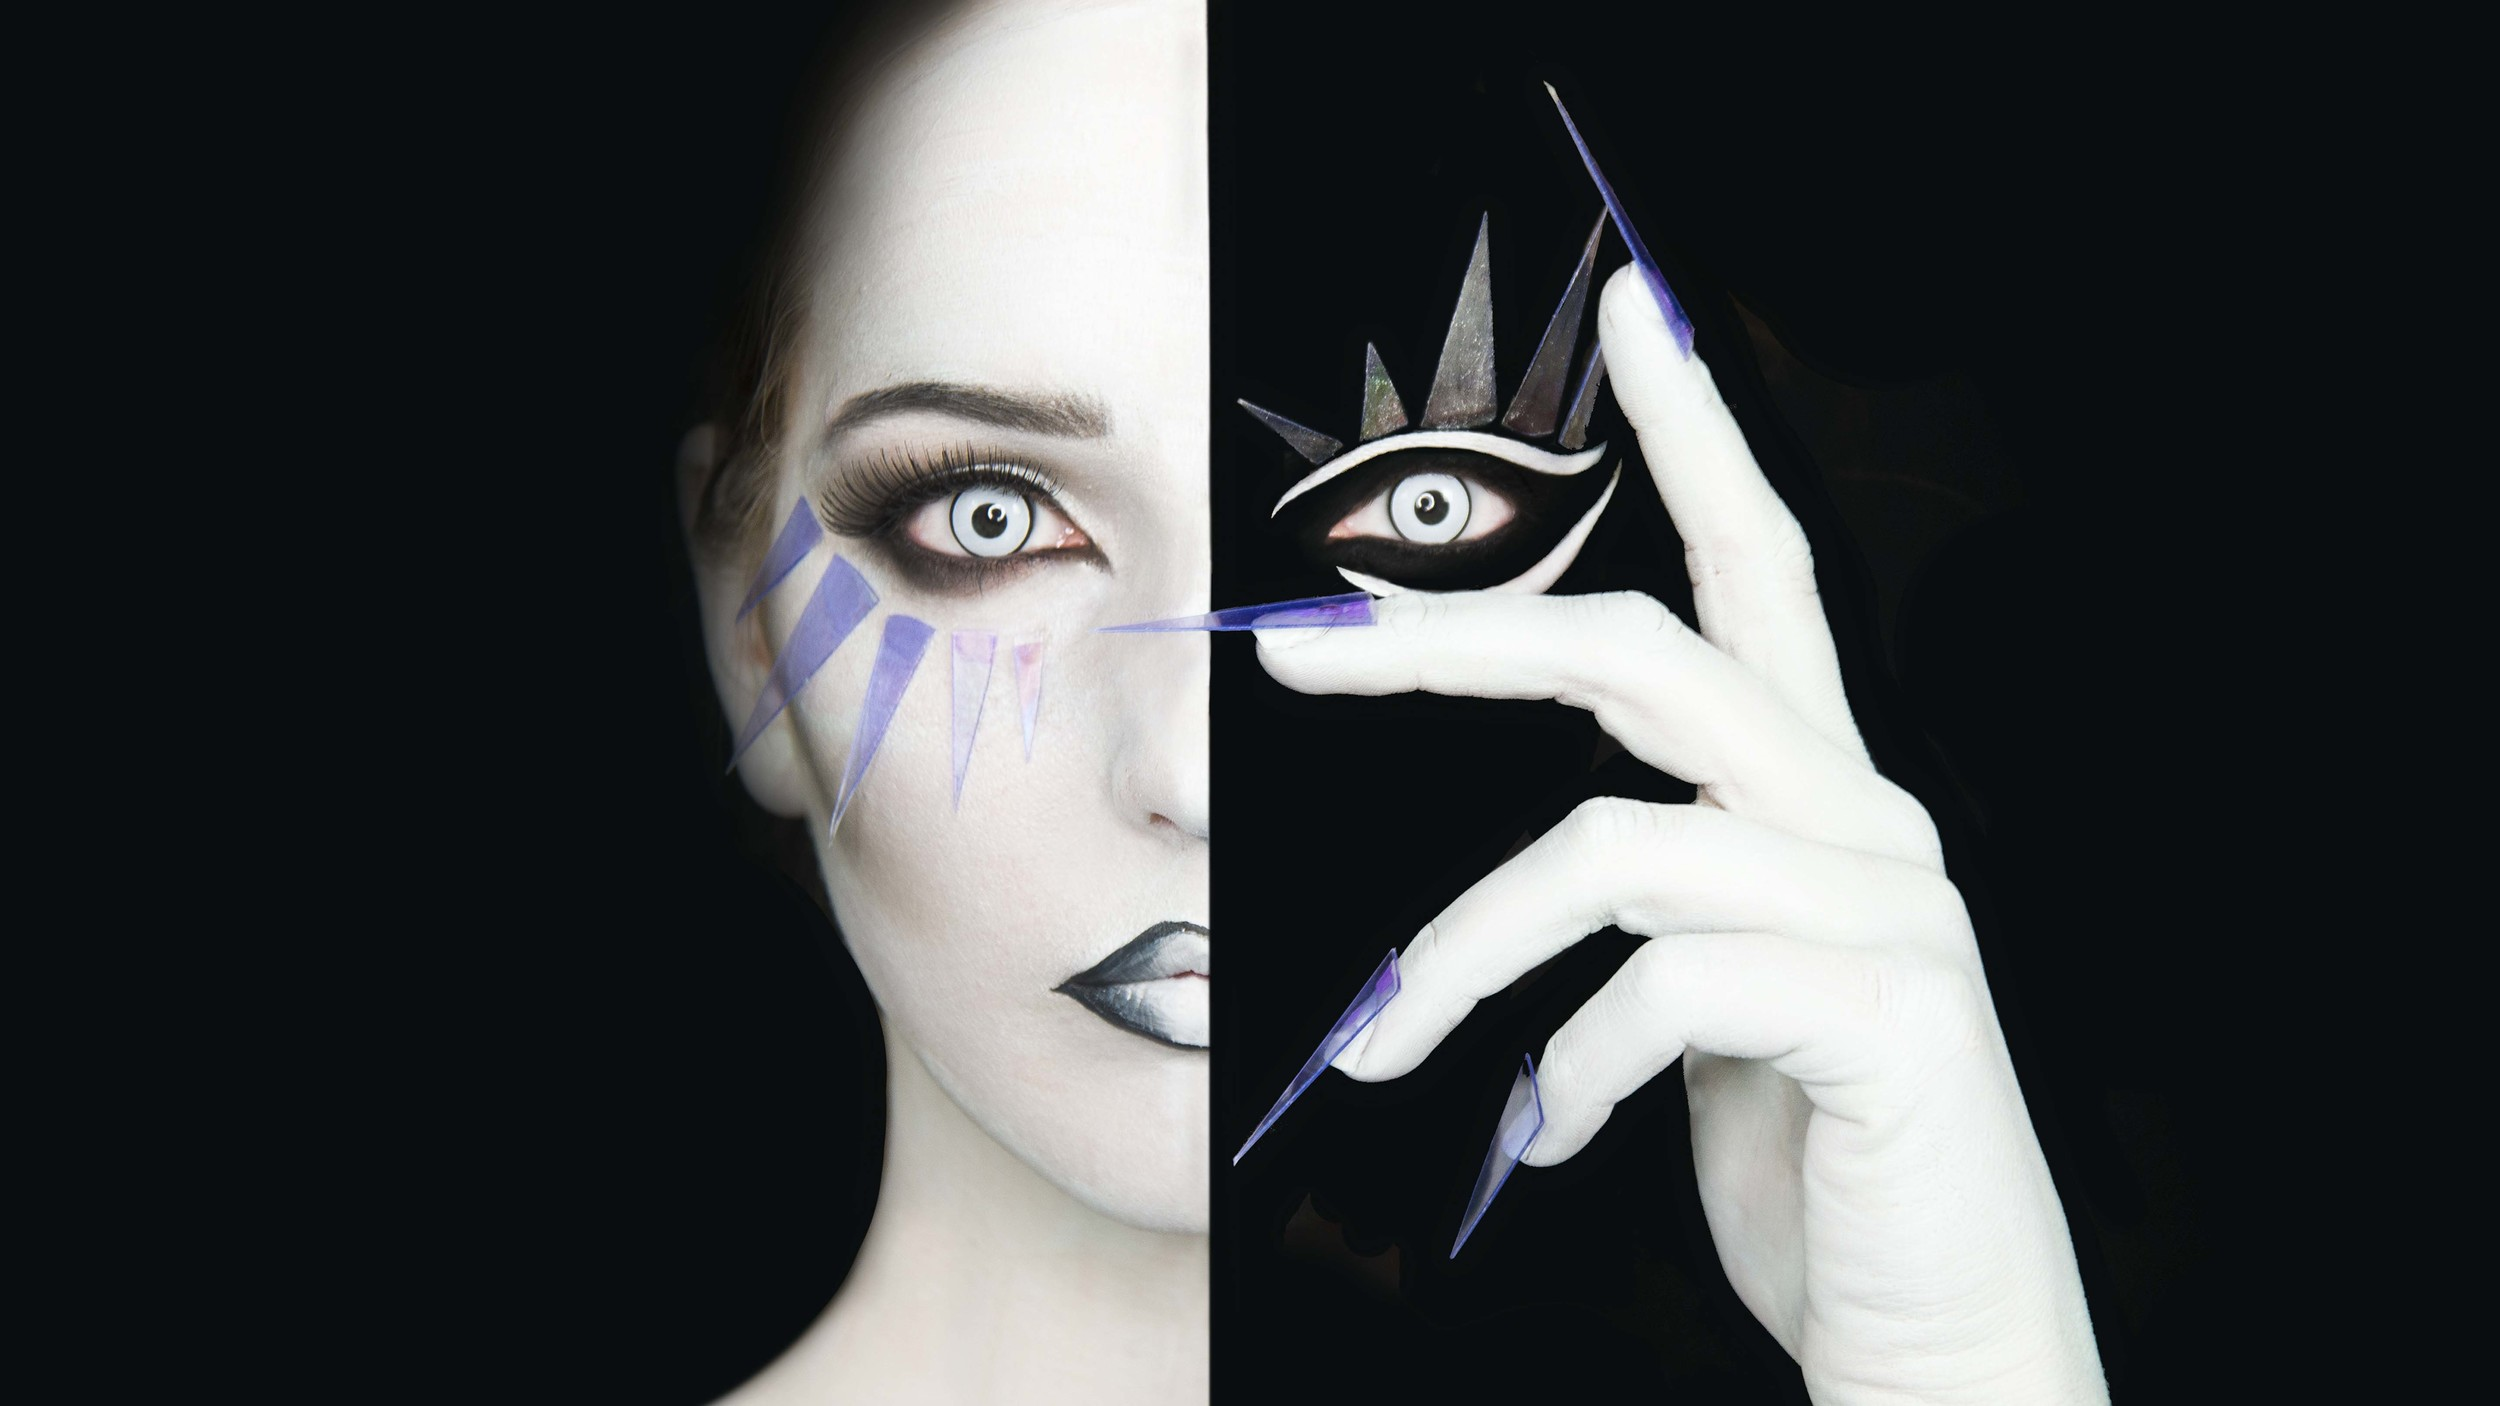 A tutorial of face paint as well as photoshop.